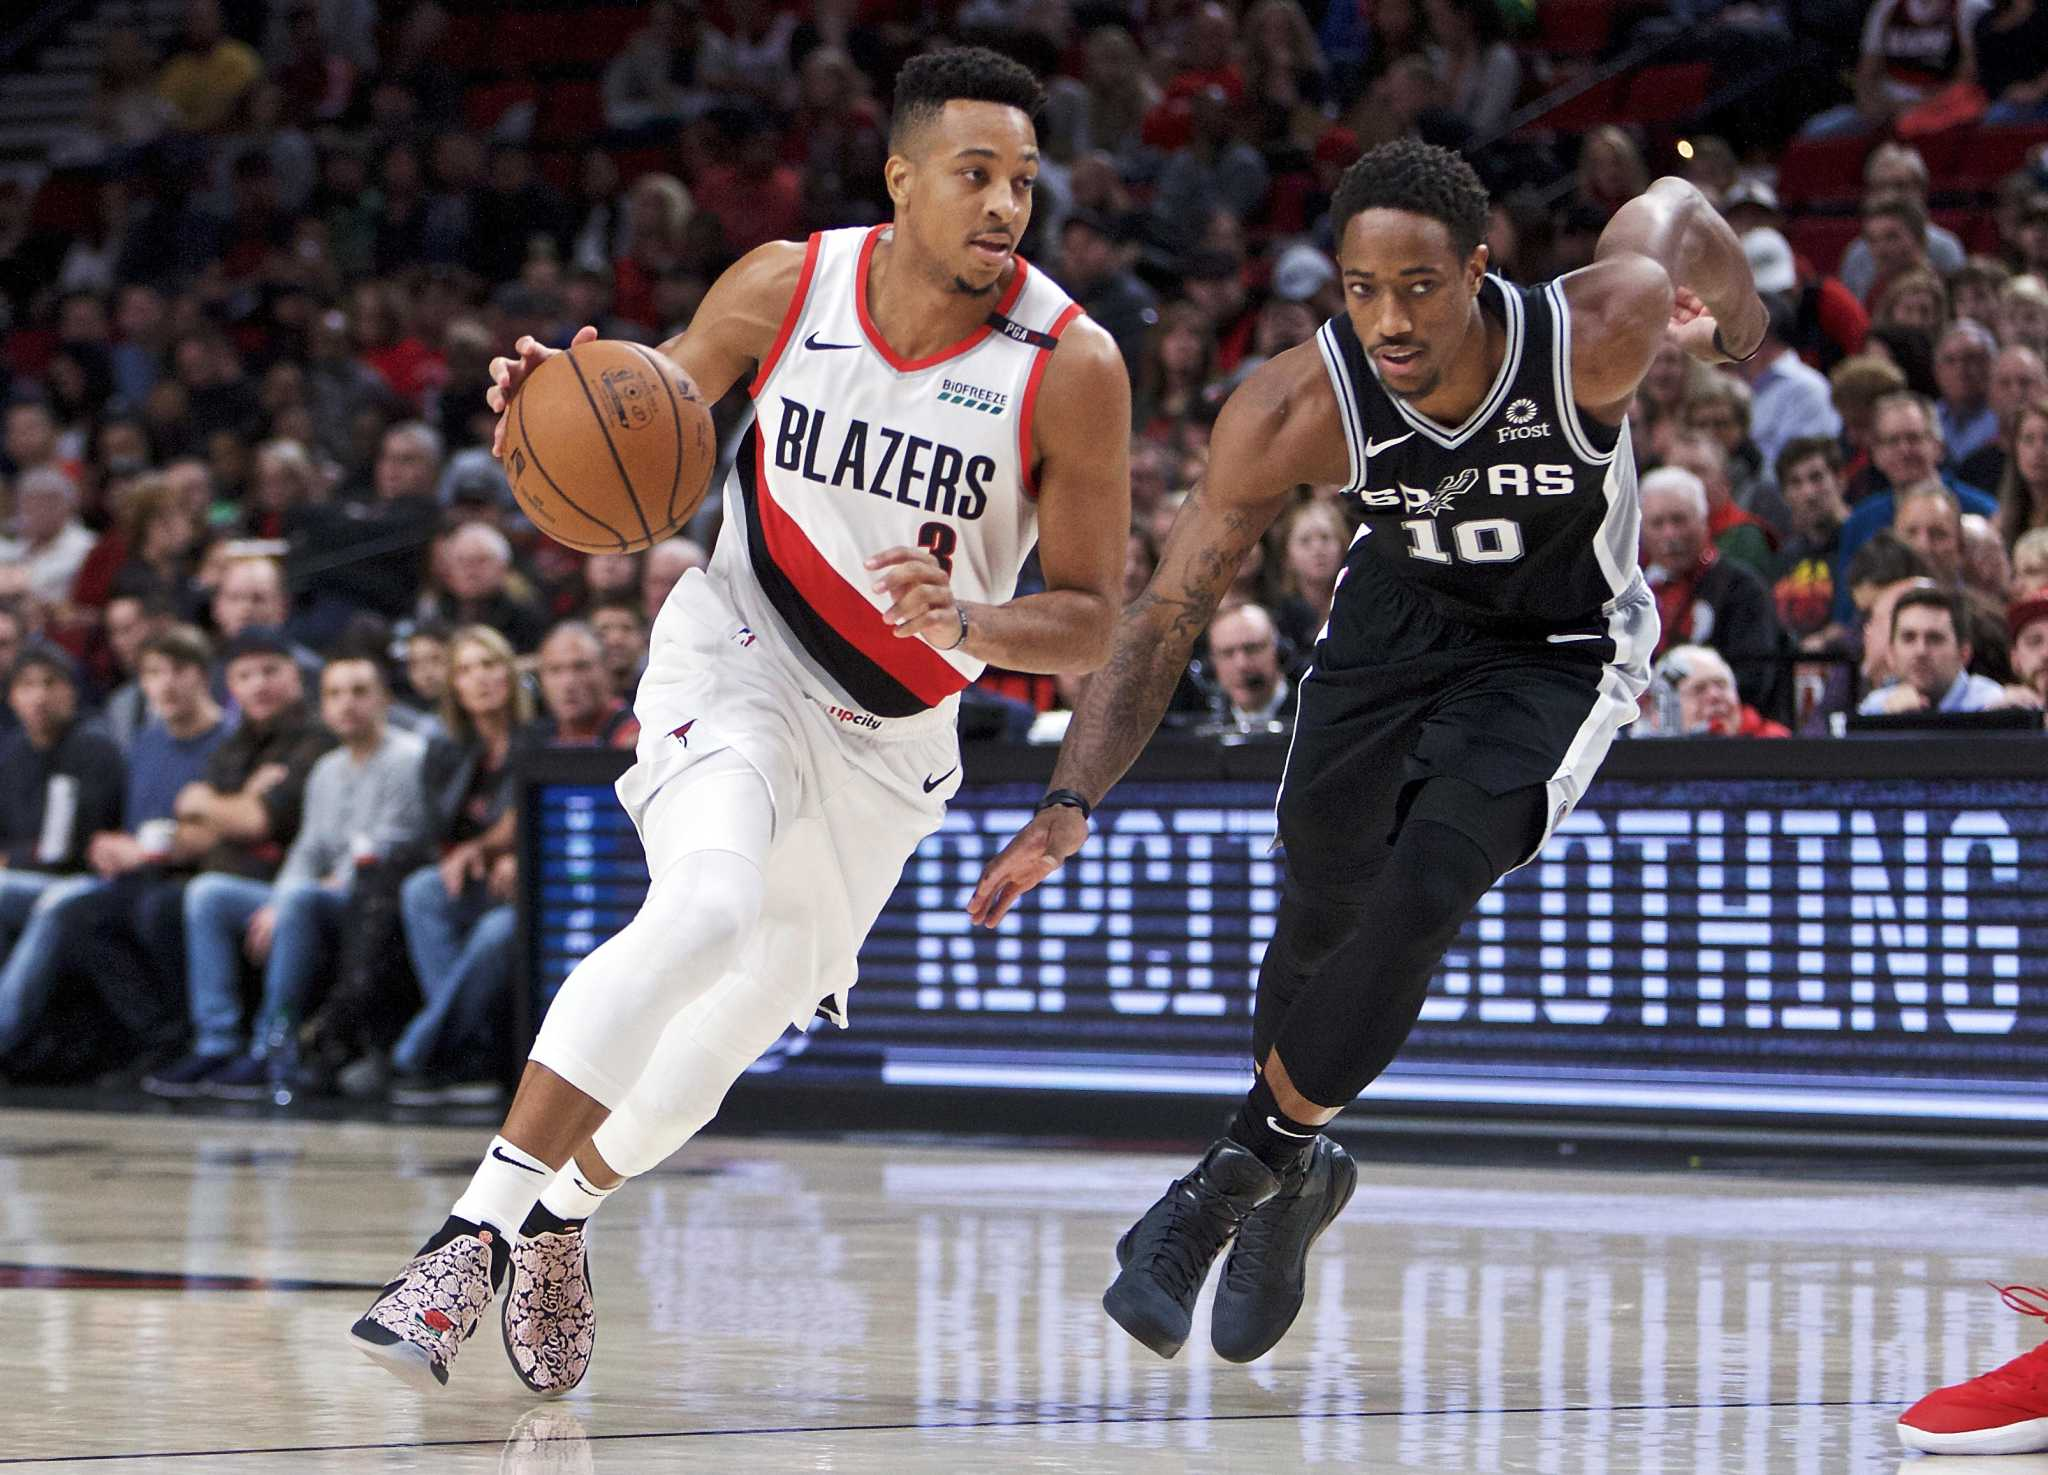 Blazers guards too much for Spurs